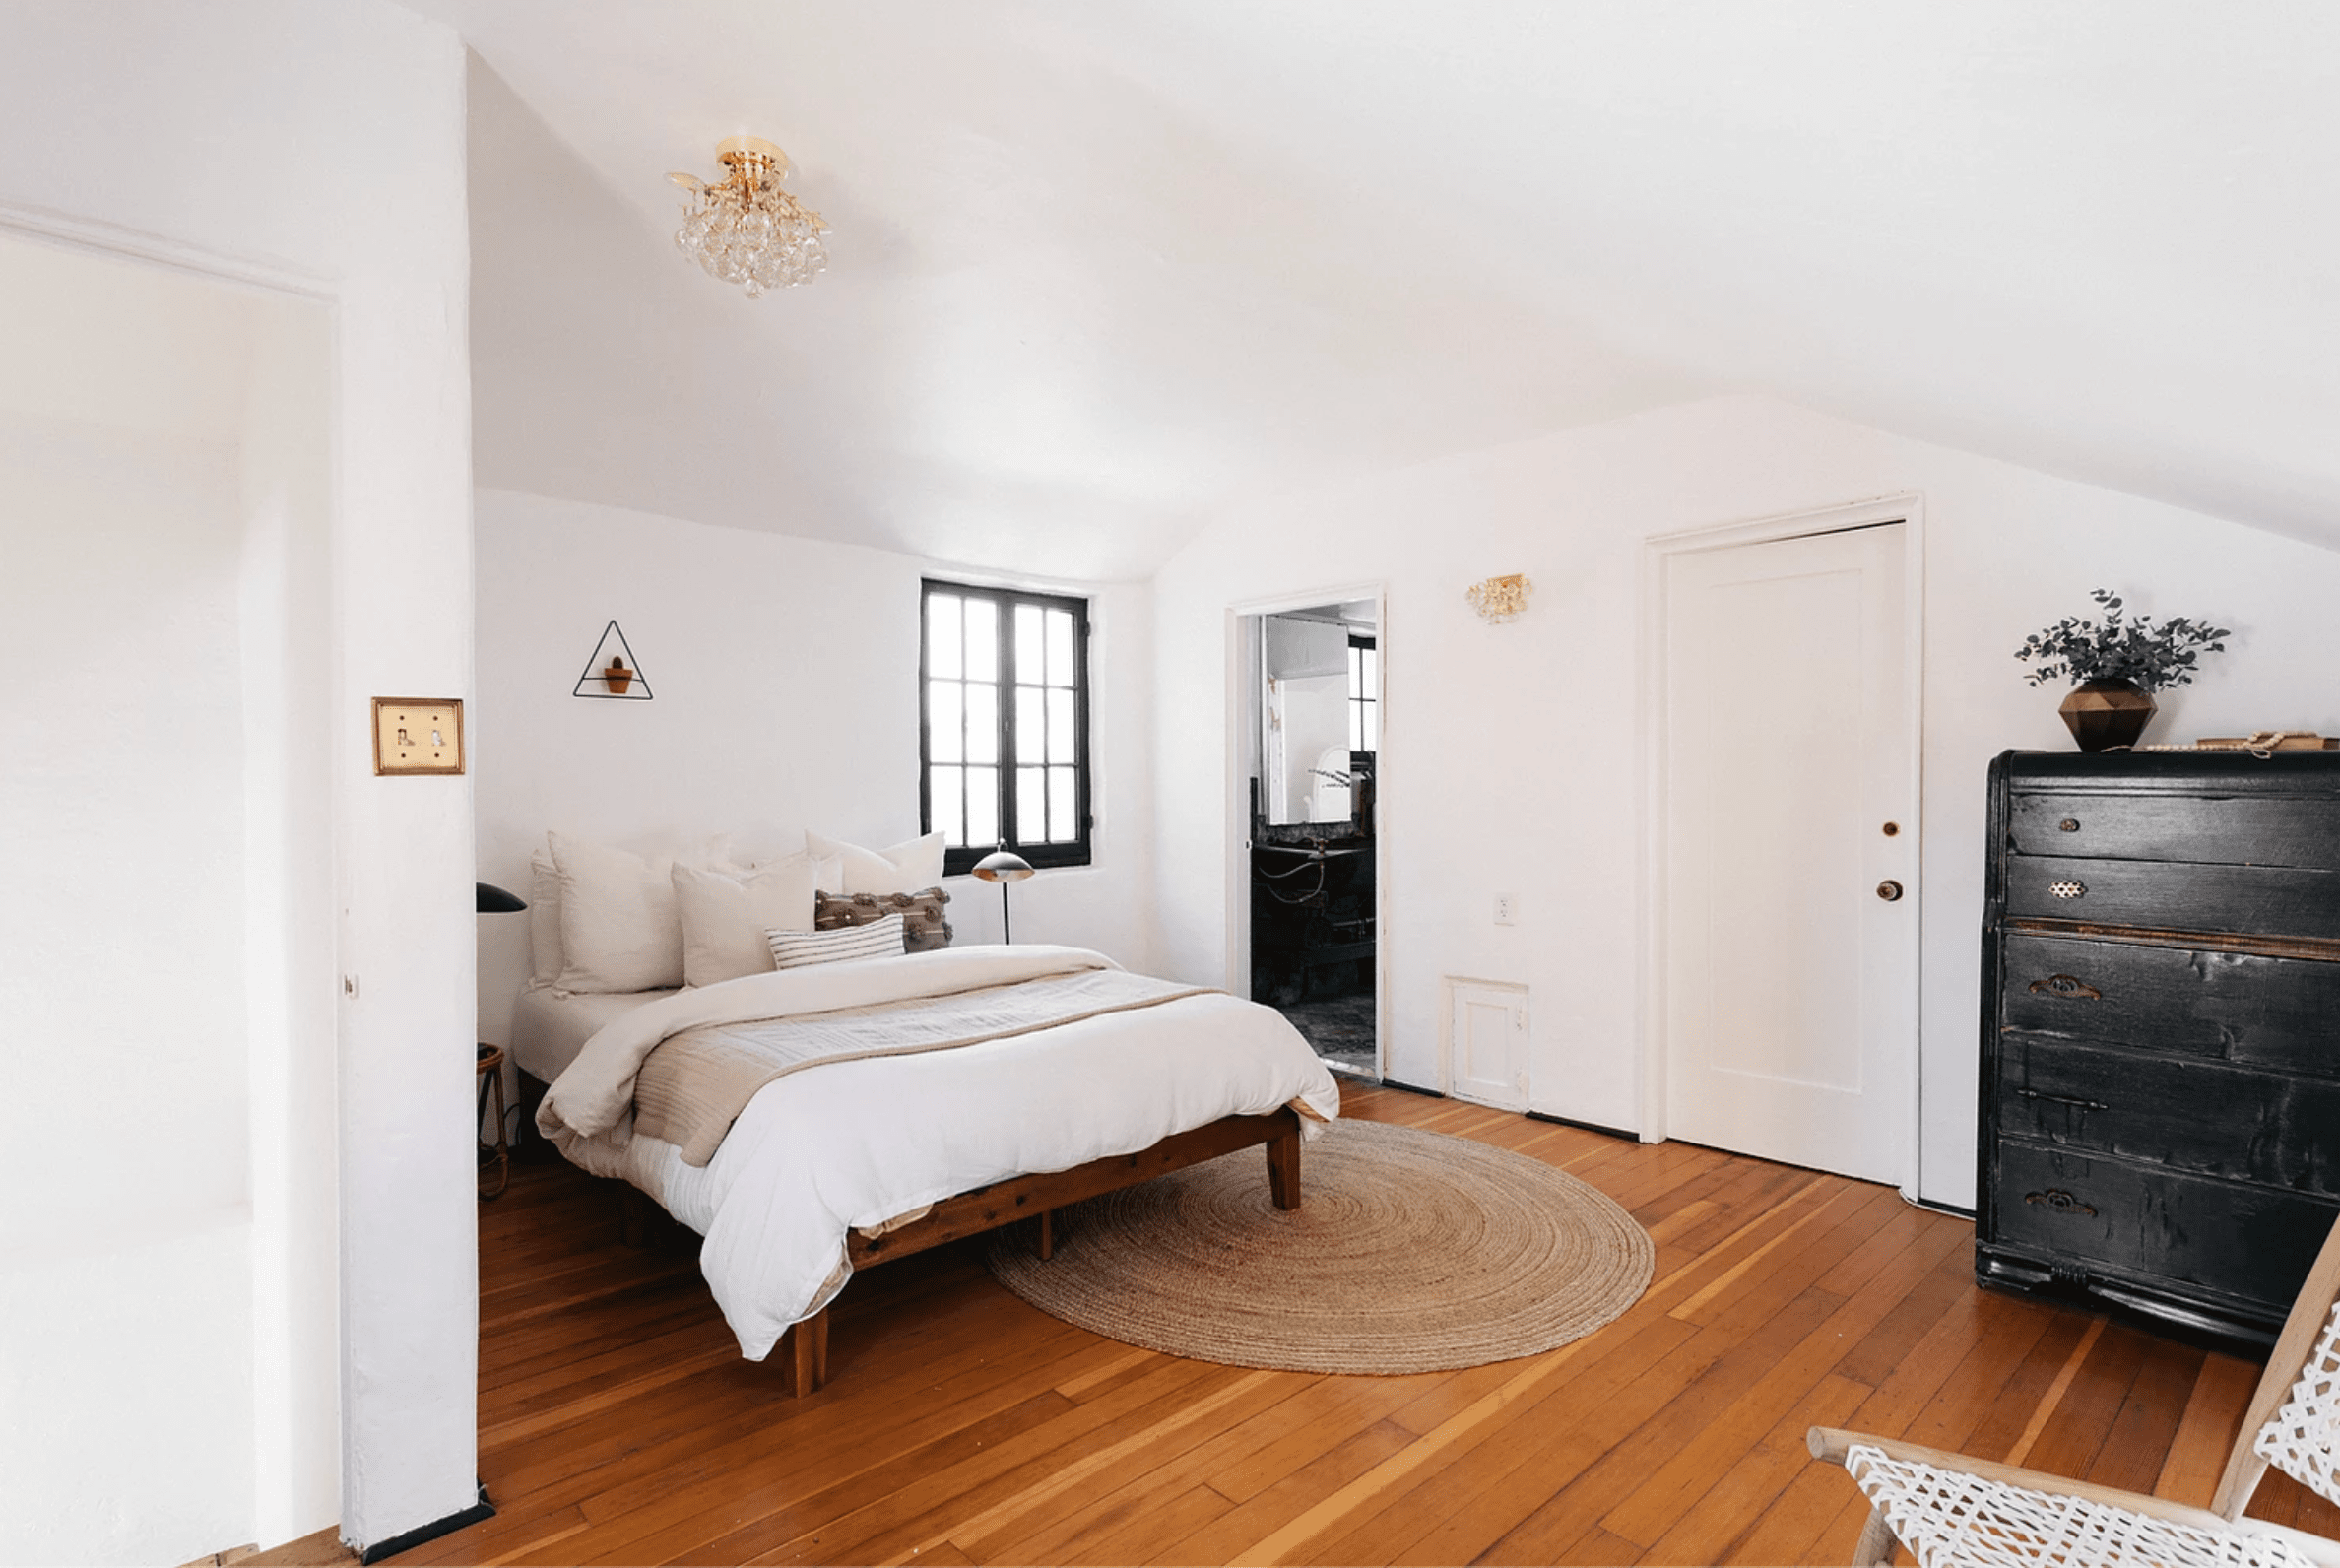 A bedroom with antique furniture